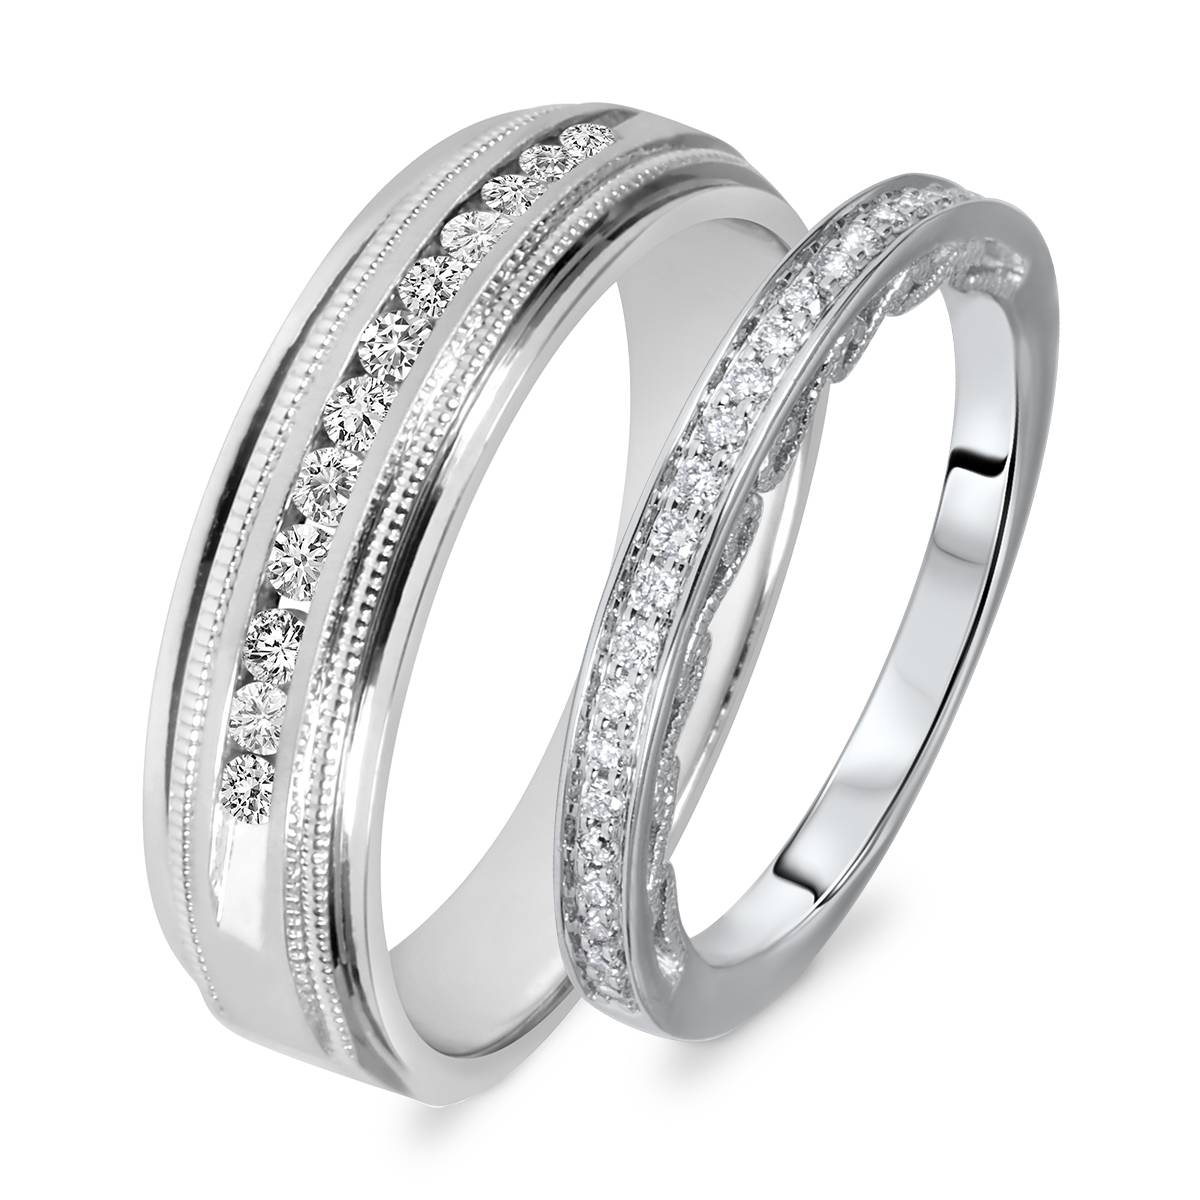 3/8 Carat T.w. Round Cut Diamond His And Hers Wedding Band Set 14K In His And Her Wedding Bands Sets (Gallery 117 of 339)